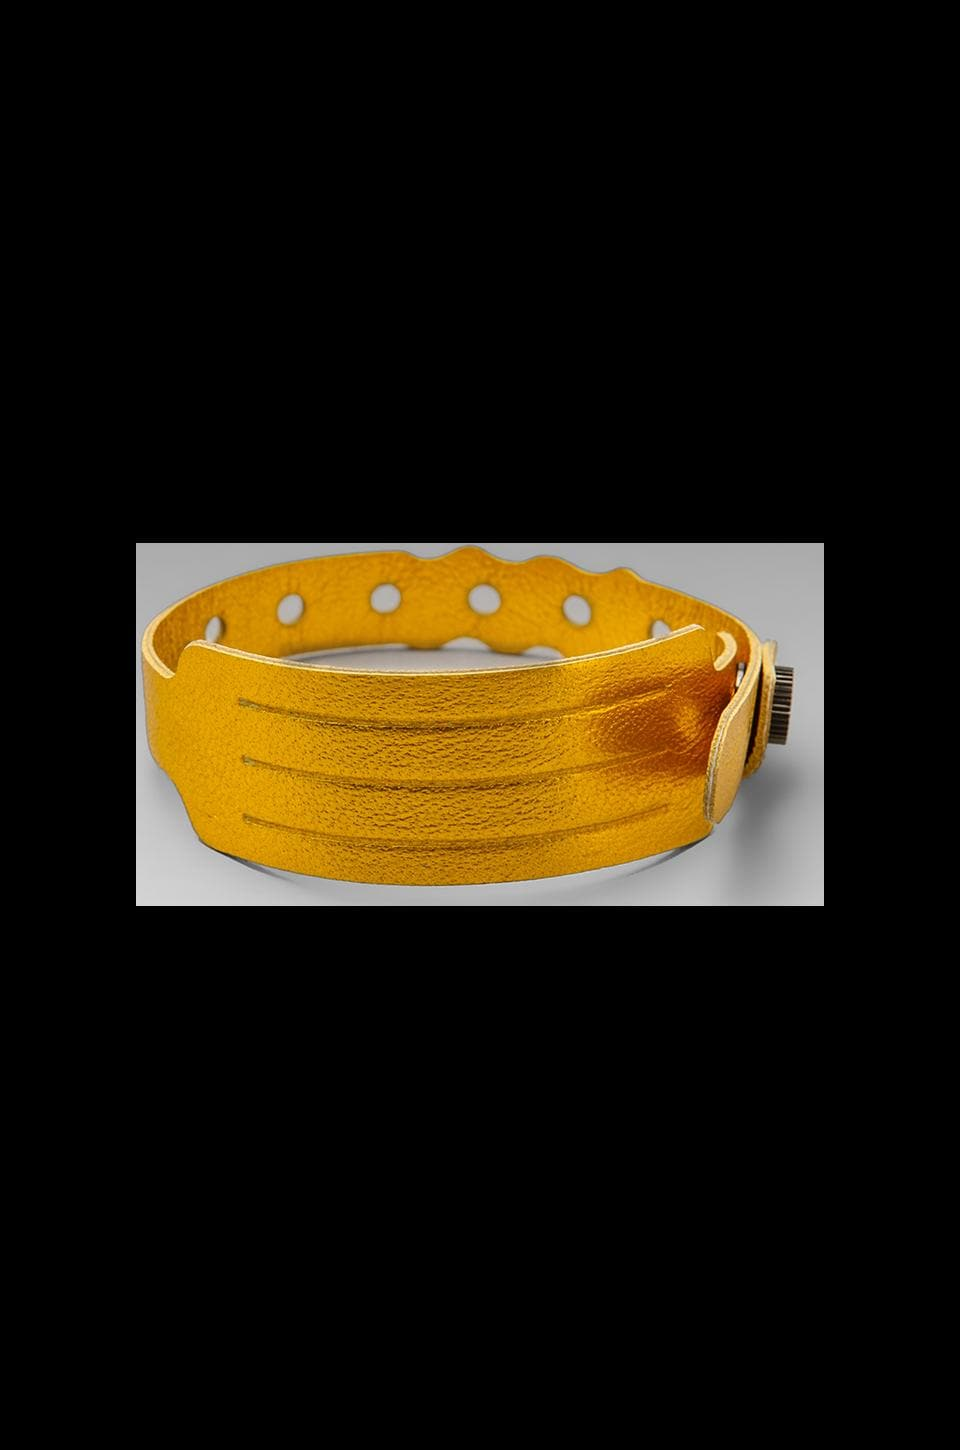 Cast of Vices Coming Or Going Medical ID Bracelet in Yellow